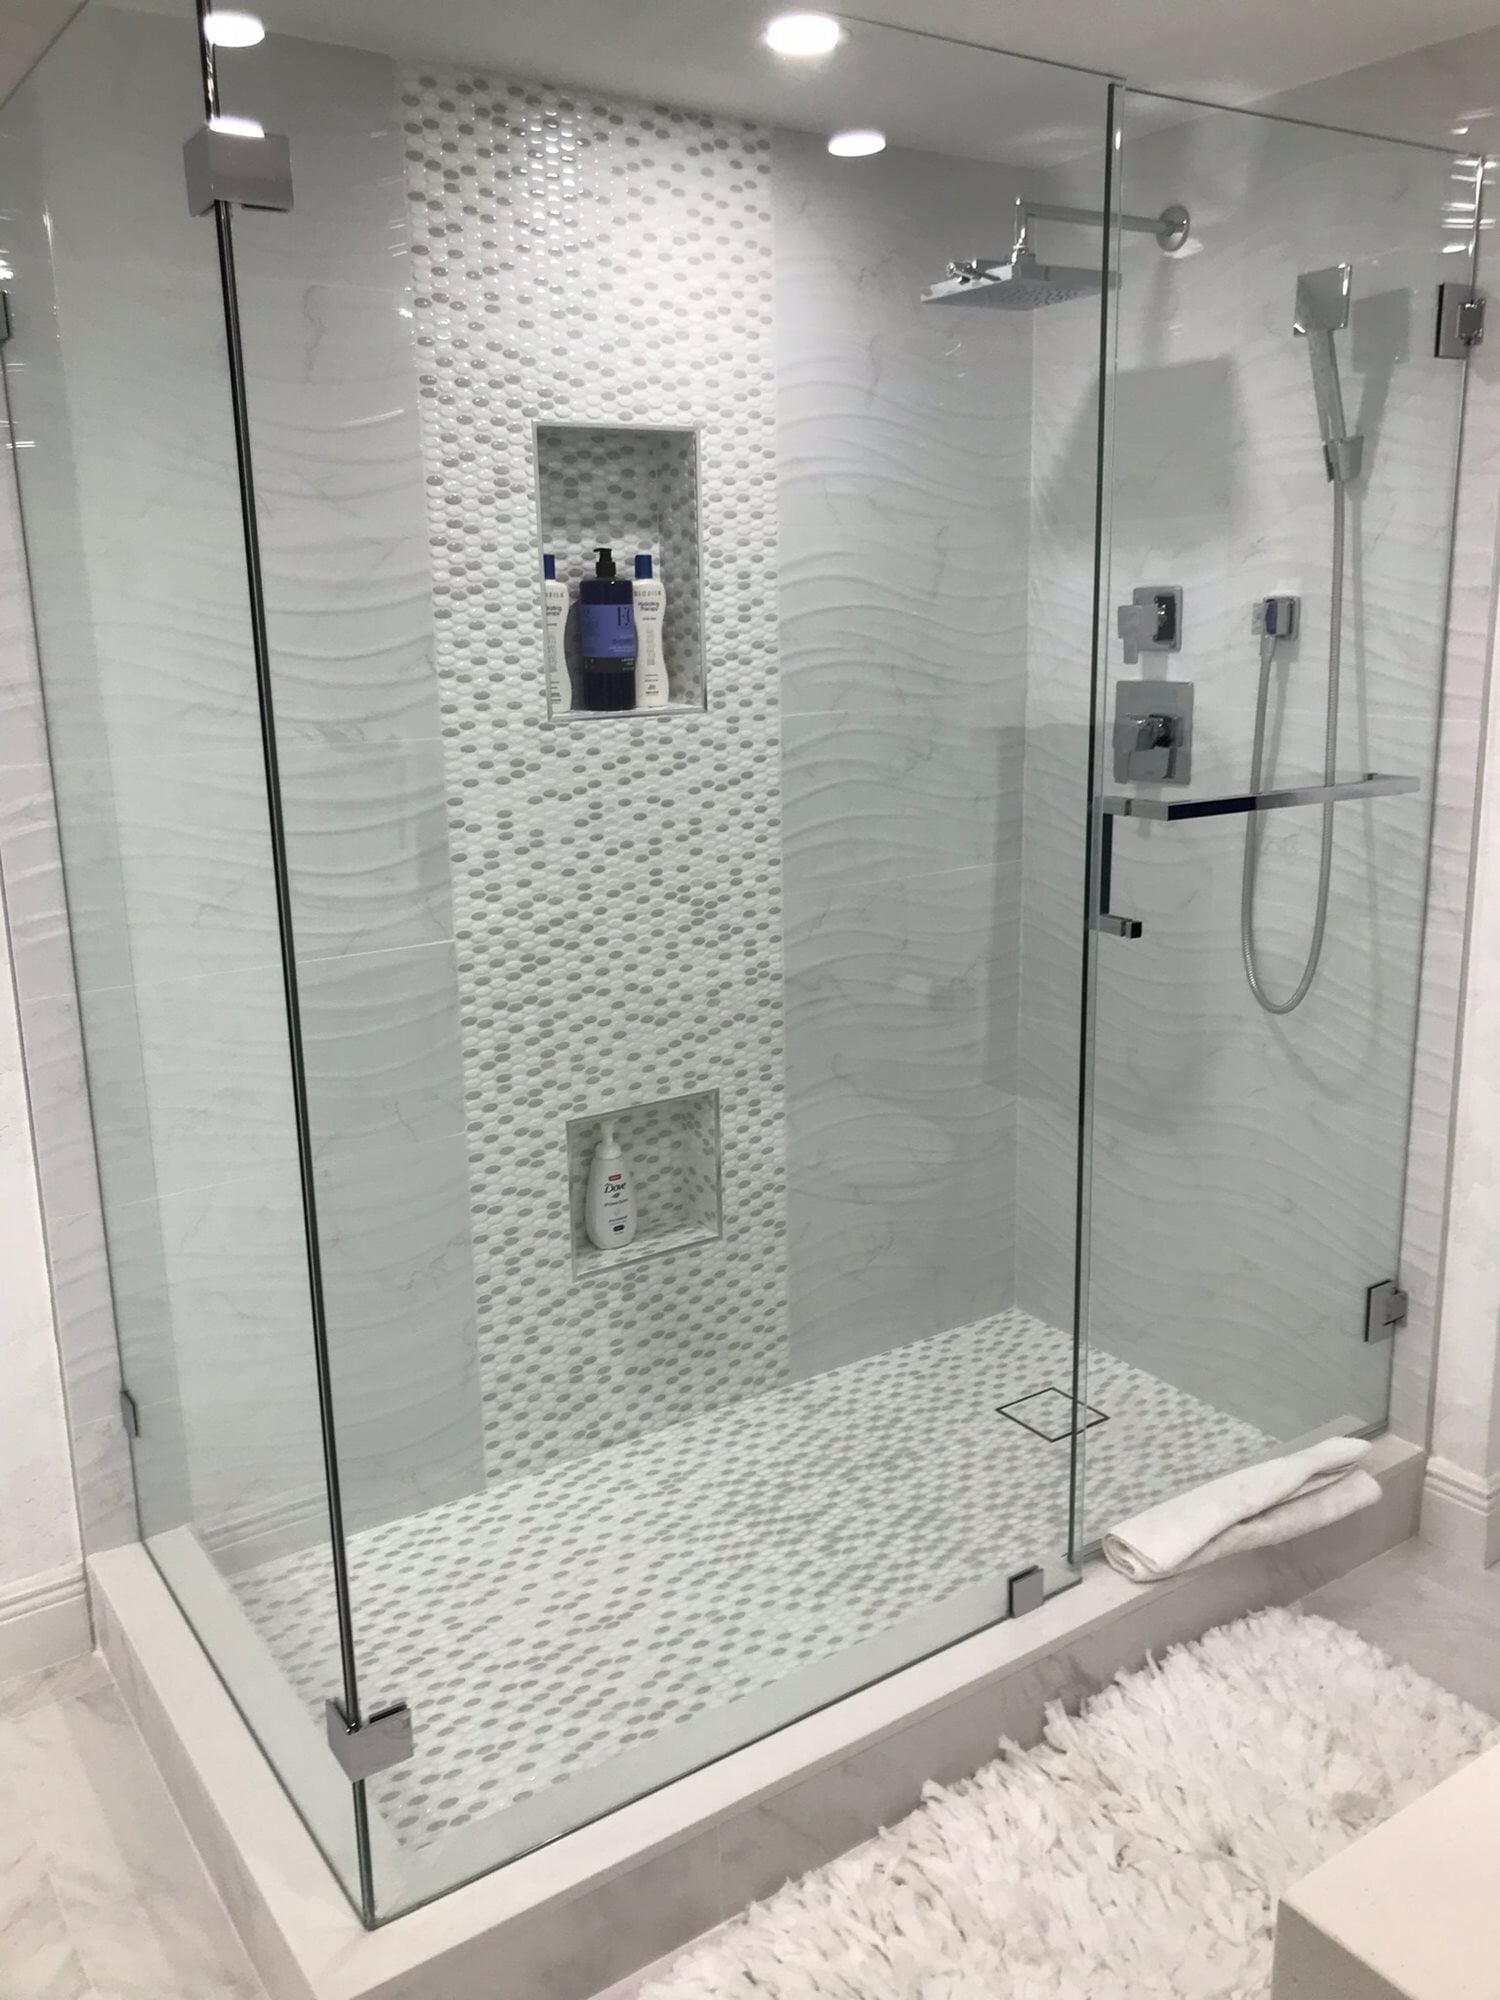 Tile shower installation in West Palm Beach, FL from Floors For You Kitchen & Bath